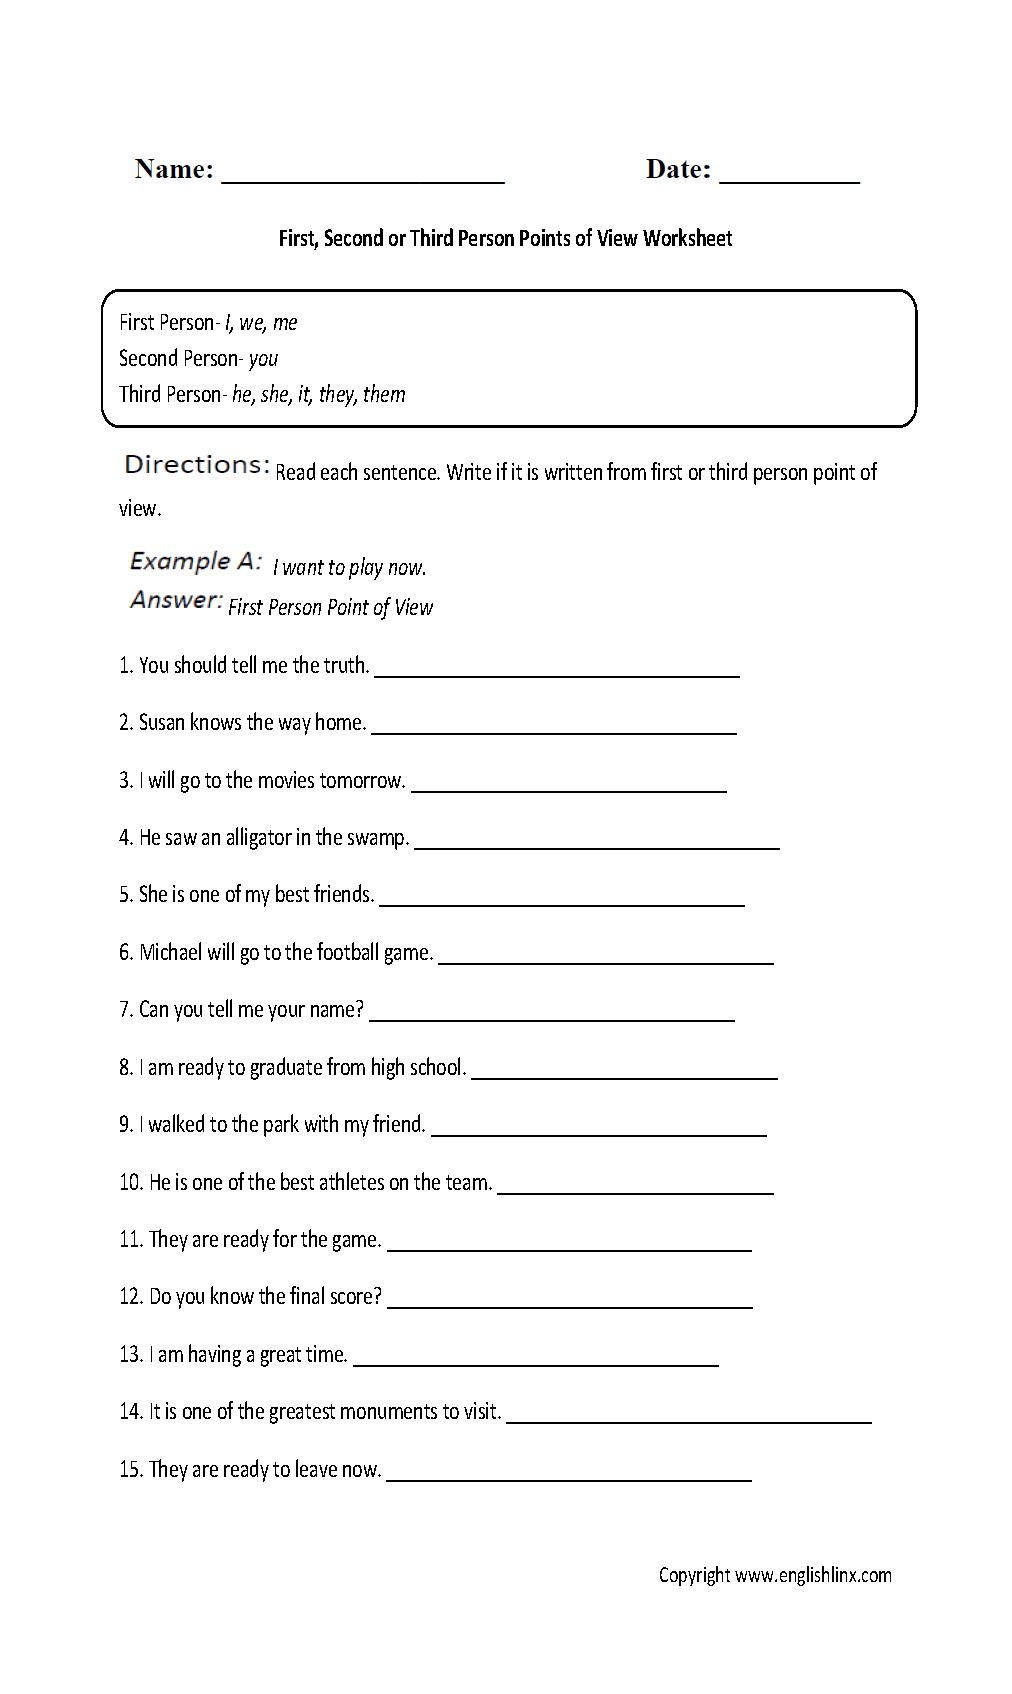 Proatmealus  Personable Englishlinxcom  Point Of View Worksheets With Glamorous Point Of View Worksheet With Delightful Multiplication Grade  Worksheets Also Maths Worksheet Printable In Addition Find The Slope Worksheets And Esl Weather Worksheet As Well As Number Recognition Worksheets  Additionally Can Could Worksheets From Englishlinxcom With Proatmealus  Glamorous Englishlinxcom  Point Of View Worksheets With Delightful Point Of View Worksheet And Personable Multiplication Grade  Worksheets Also Maths Worksheet Printable In Addition Find The Slope Worksheets From Englishlinxcom